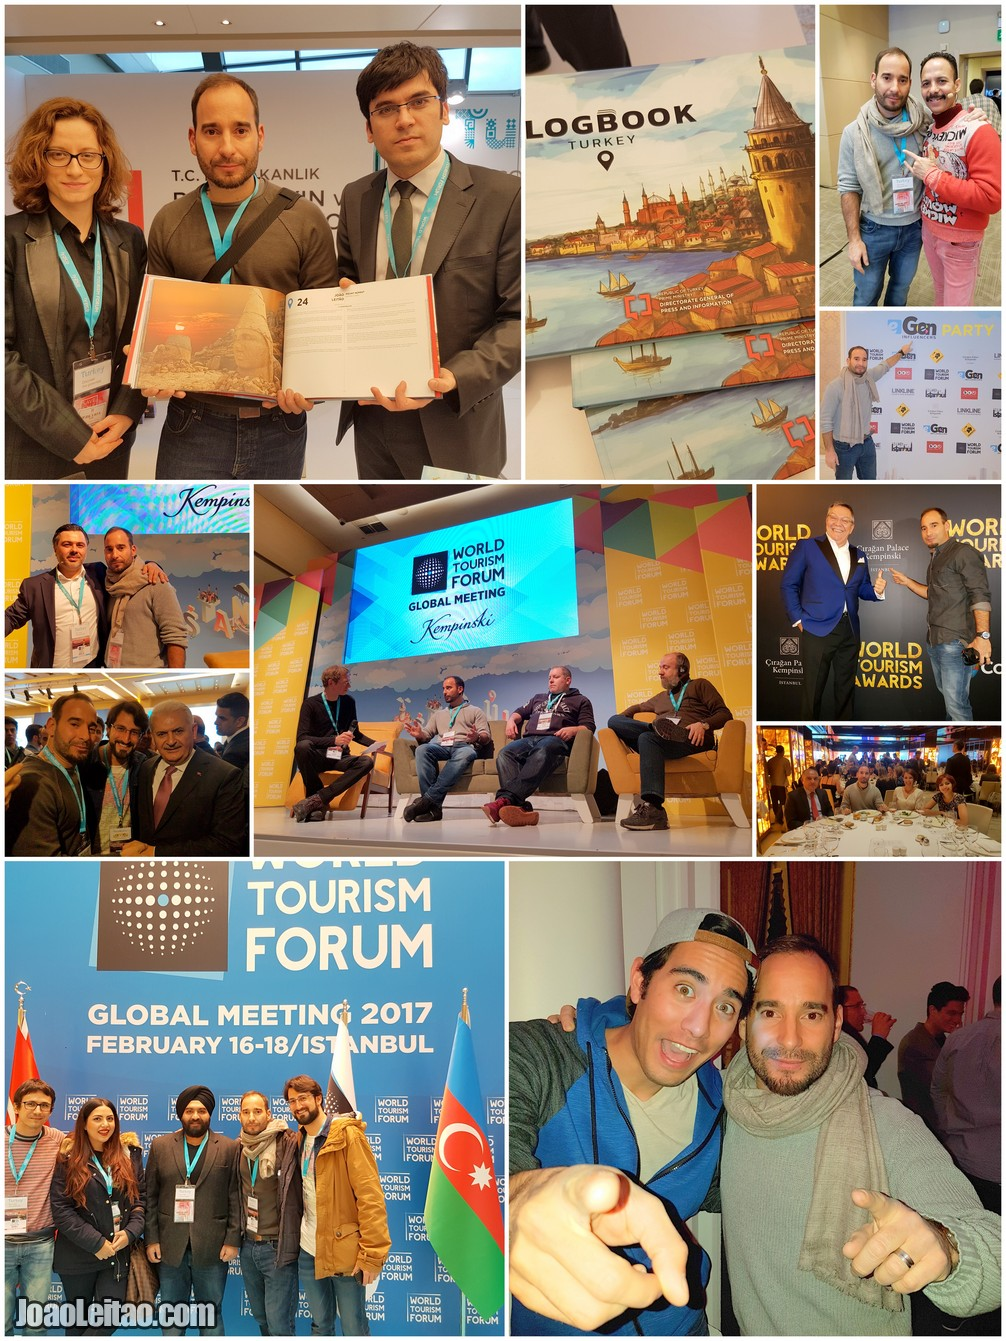 WORLD TOURISM FORUM 2017 ISTANBUL